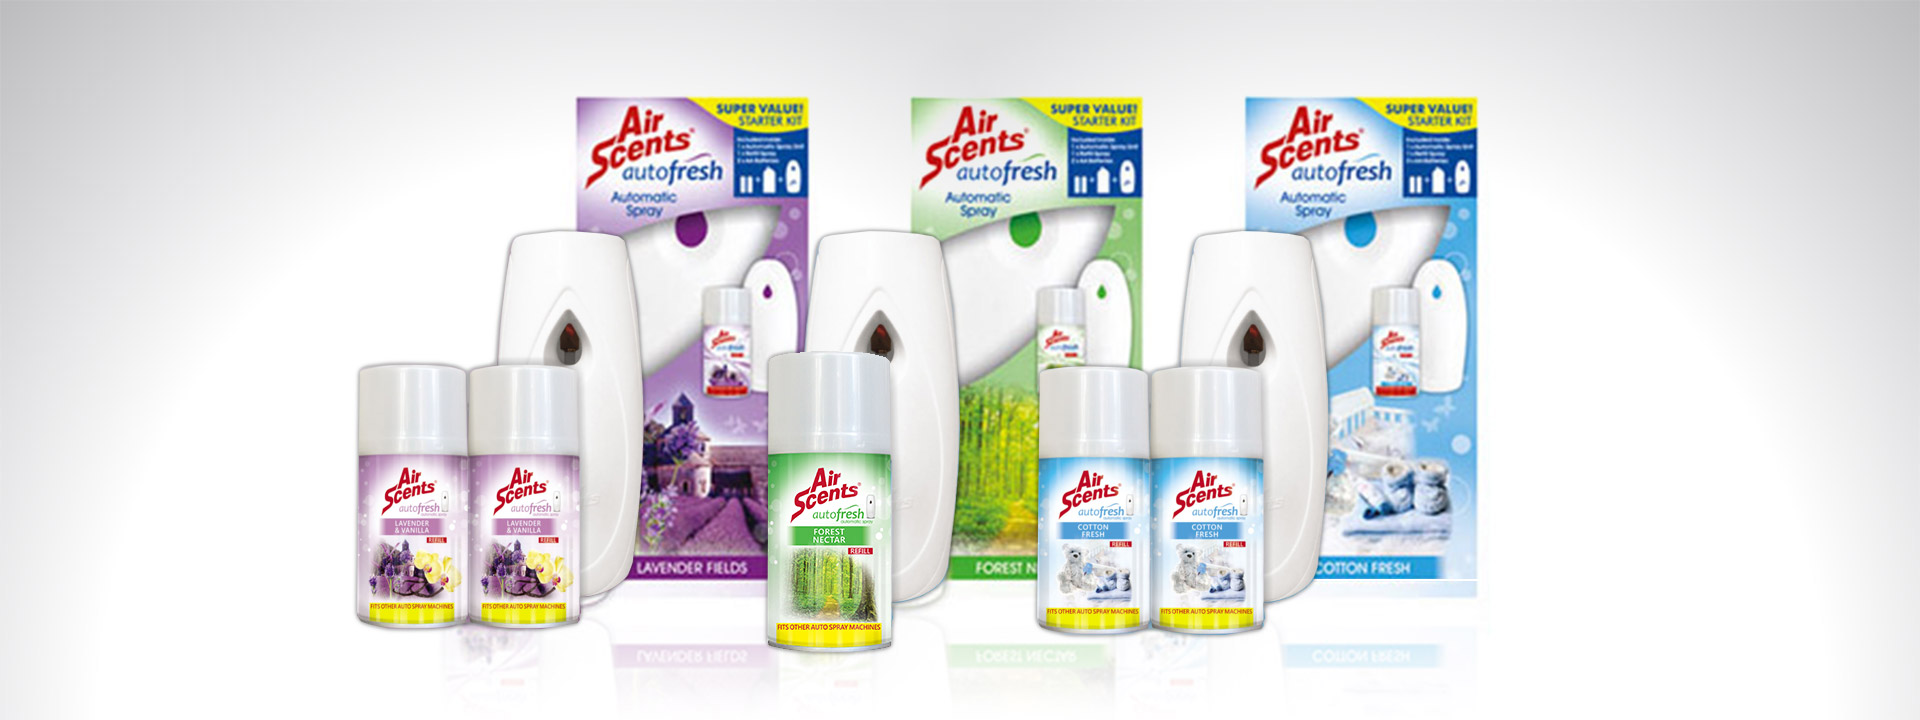 airscents-autofresh-spray-machines-and-refills